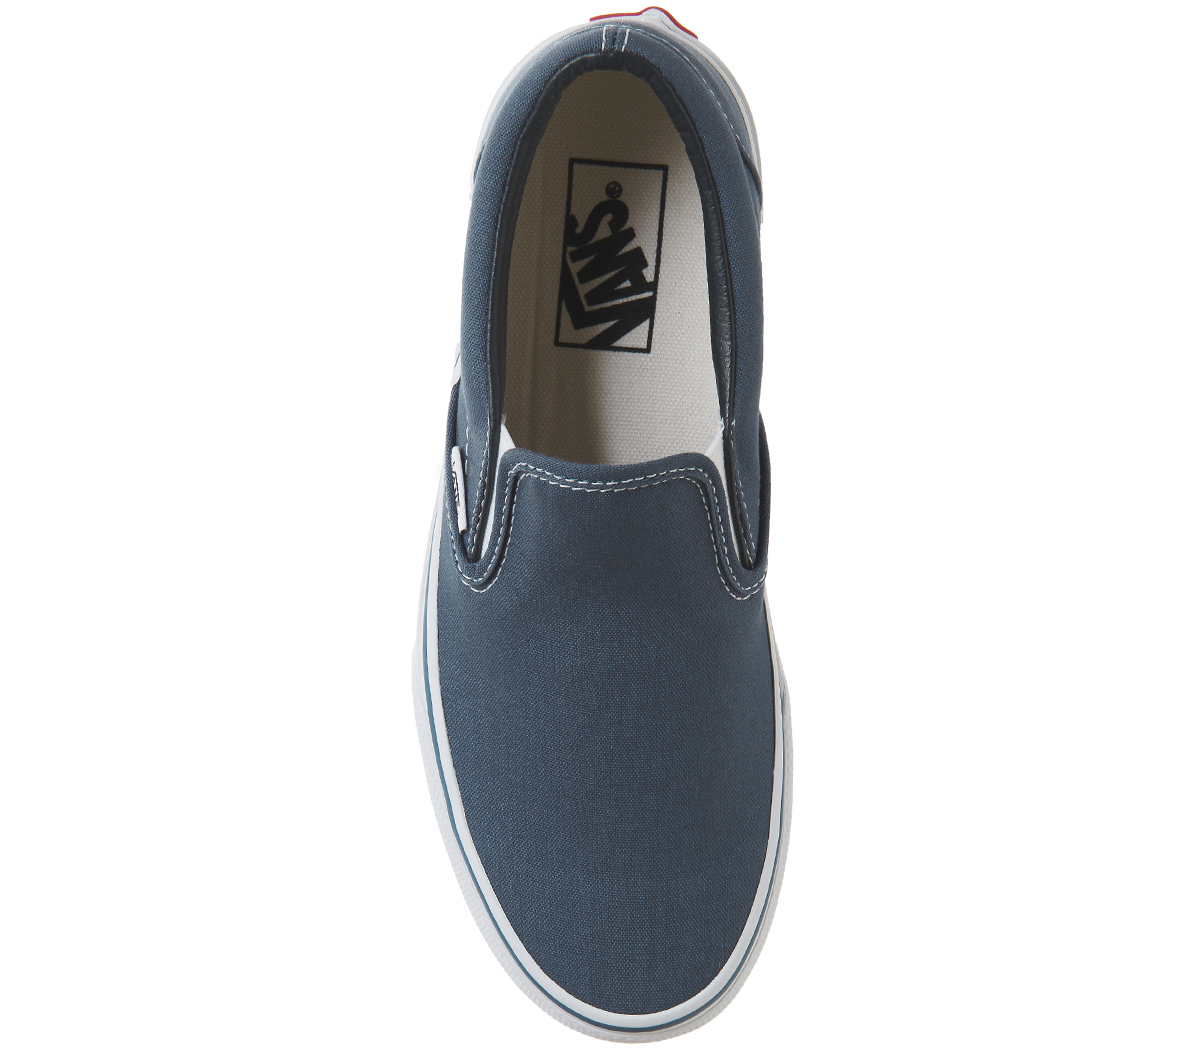 Mens-Vans-Vans-Classic-Slip-Ons-NAVY-NAVY-Trainers-Shoes